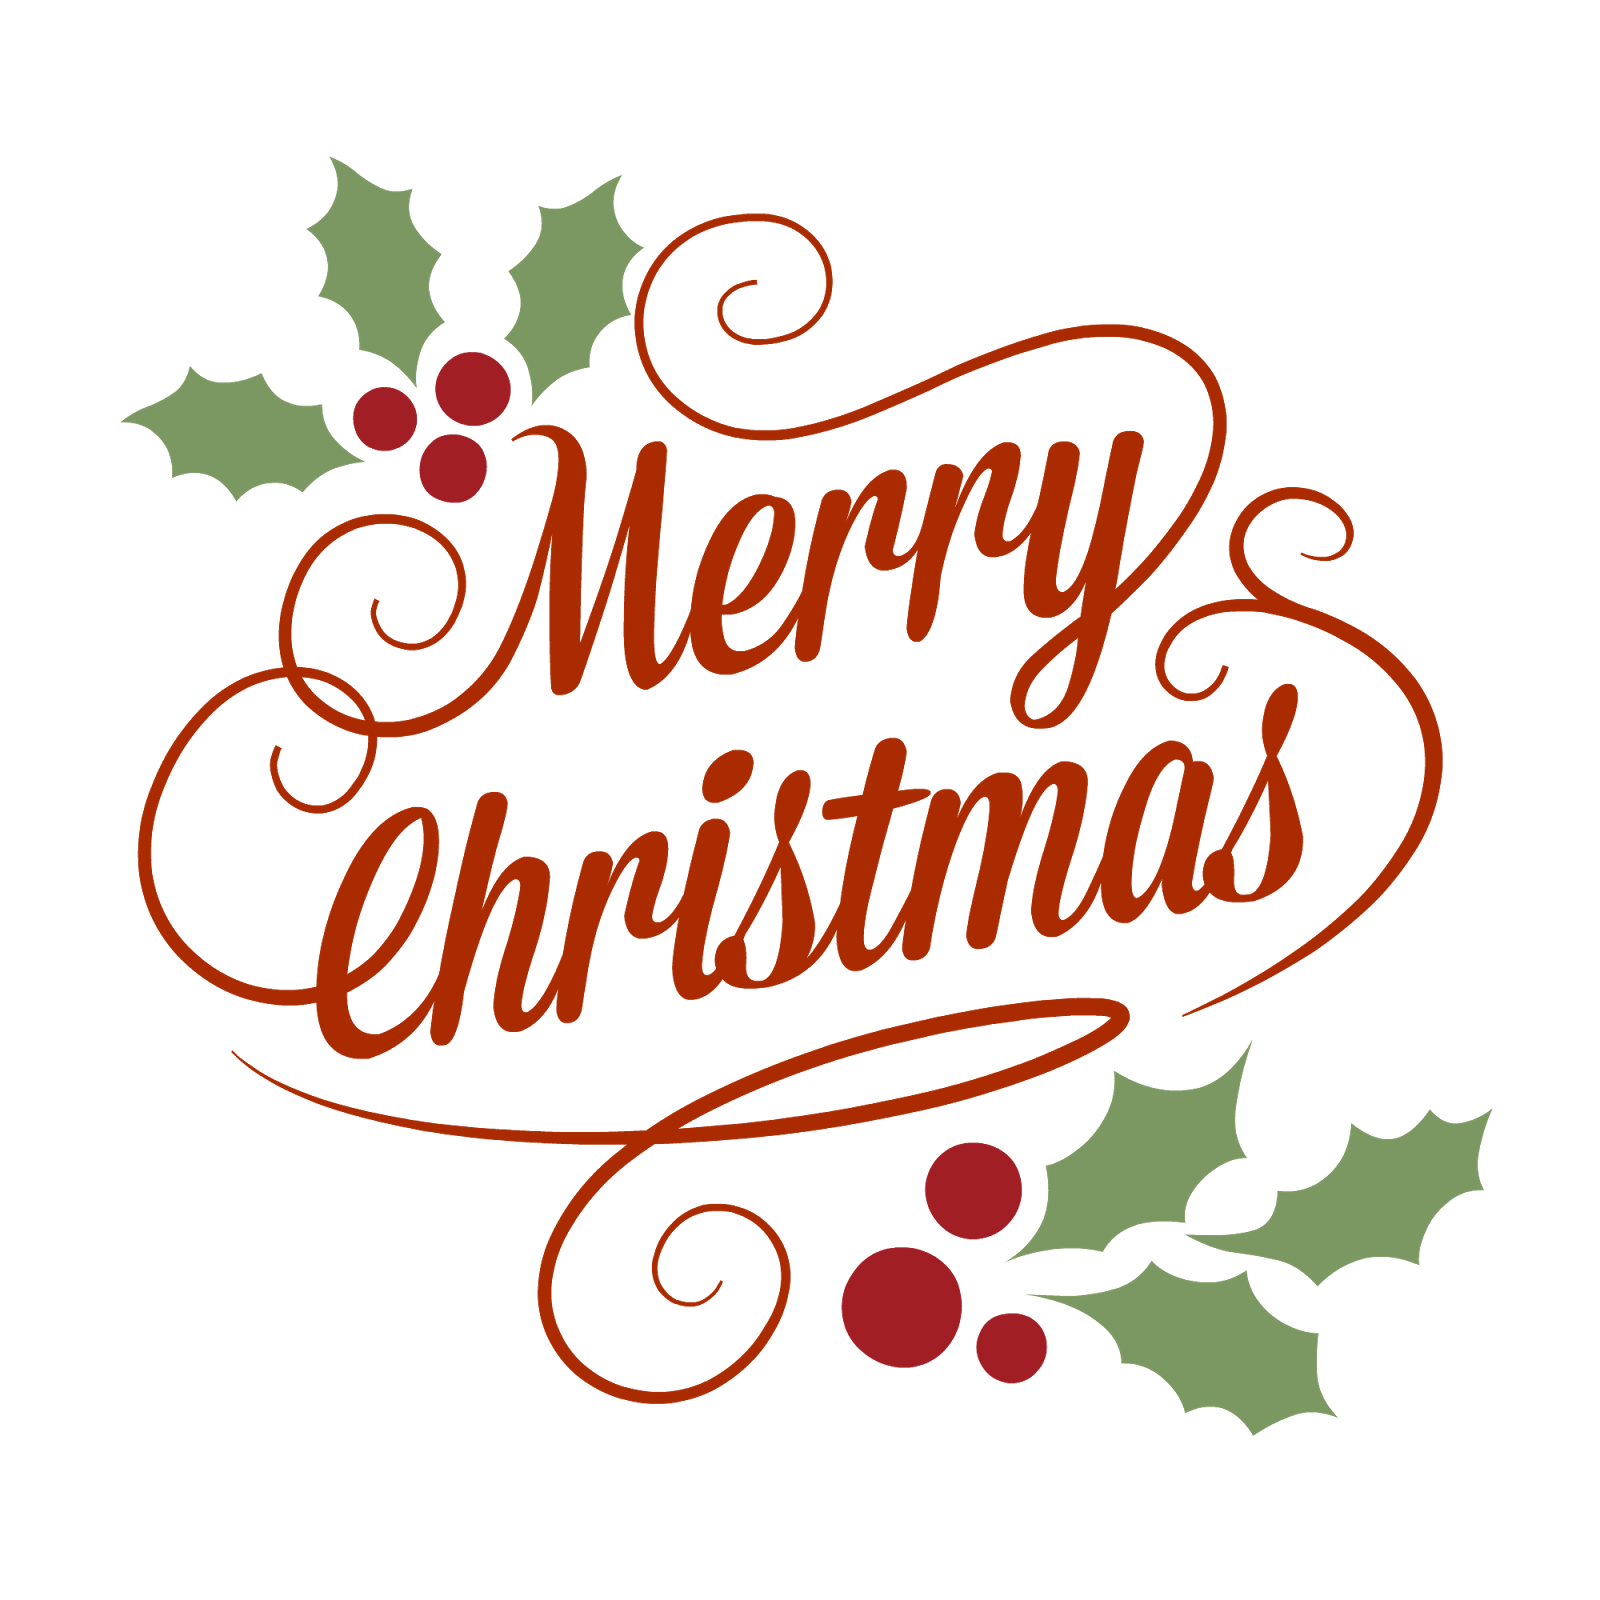 Vintage clipart vintage sign. Merry christmas classical transparent